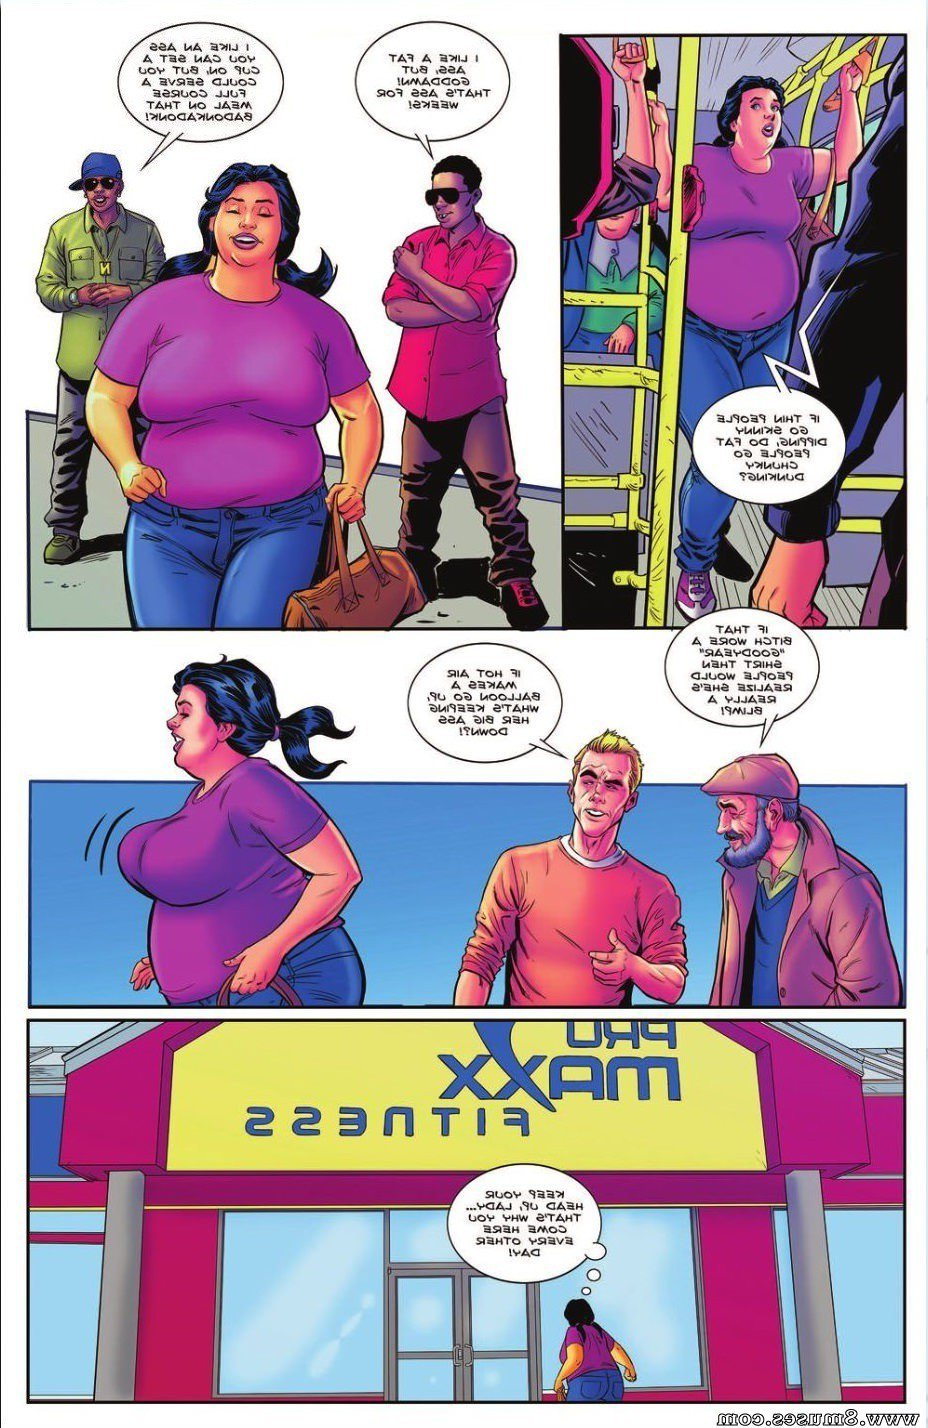 Giantess-Club-Comics/Big-Girls-Dont-Cry/Issue-1 Big_Girls_Dont_Cry_-_Issue_1_5.jpg